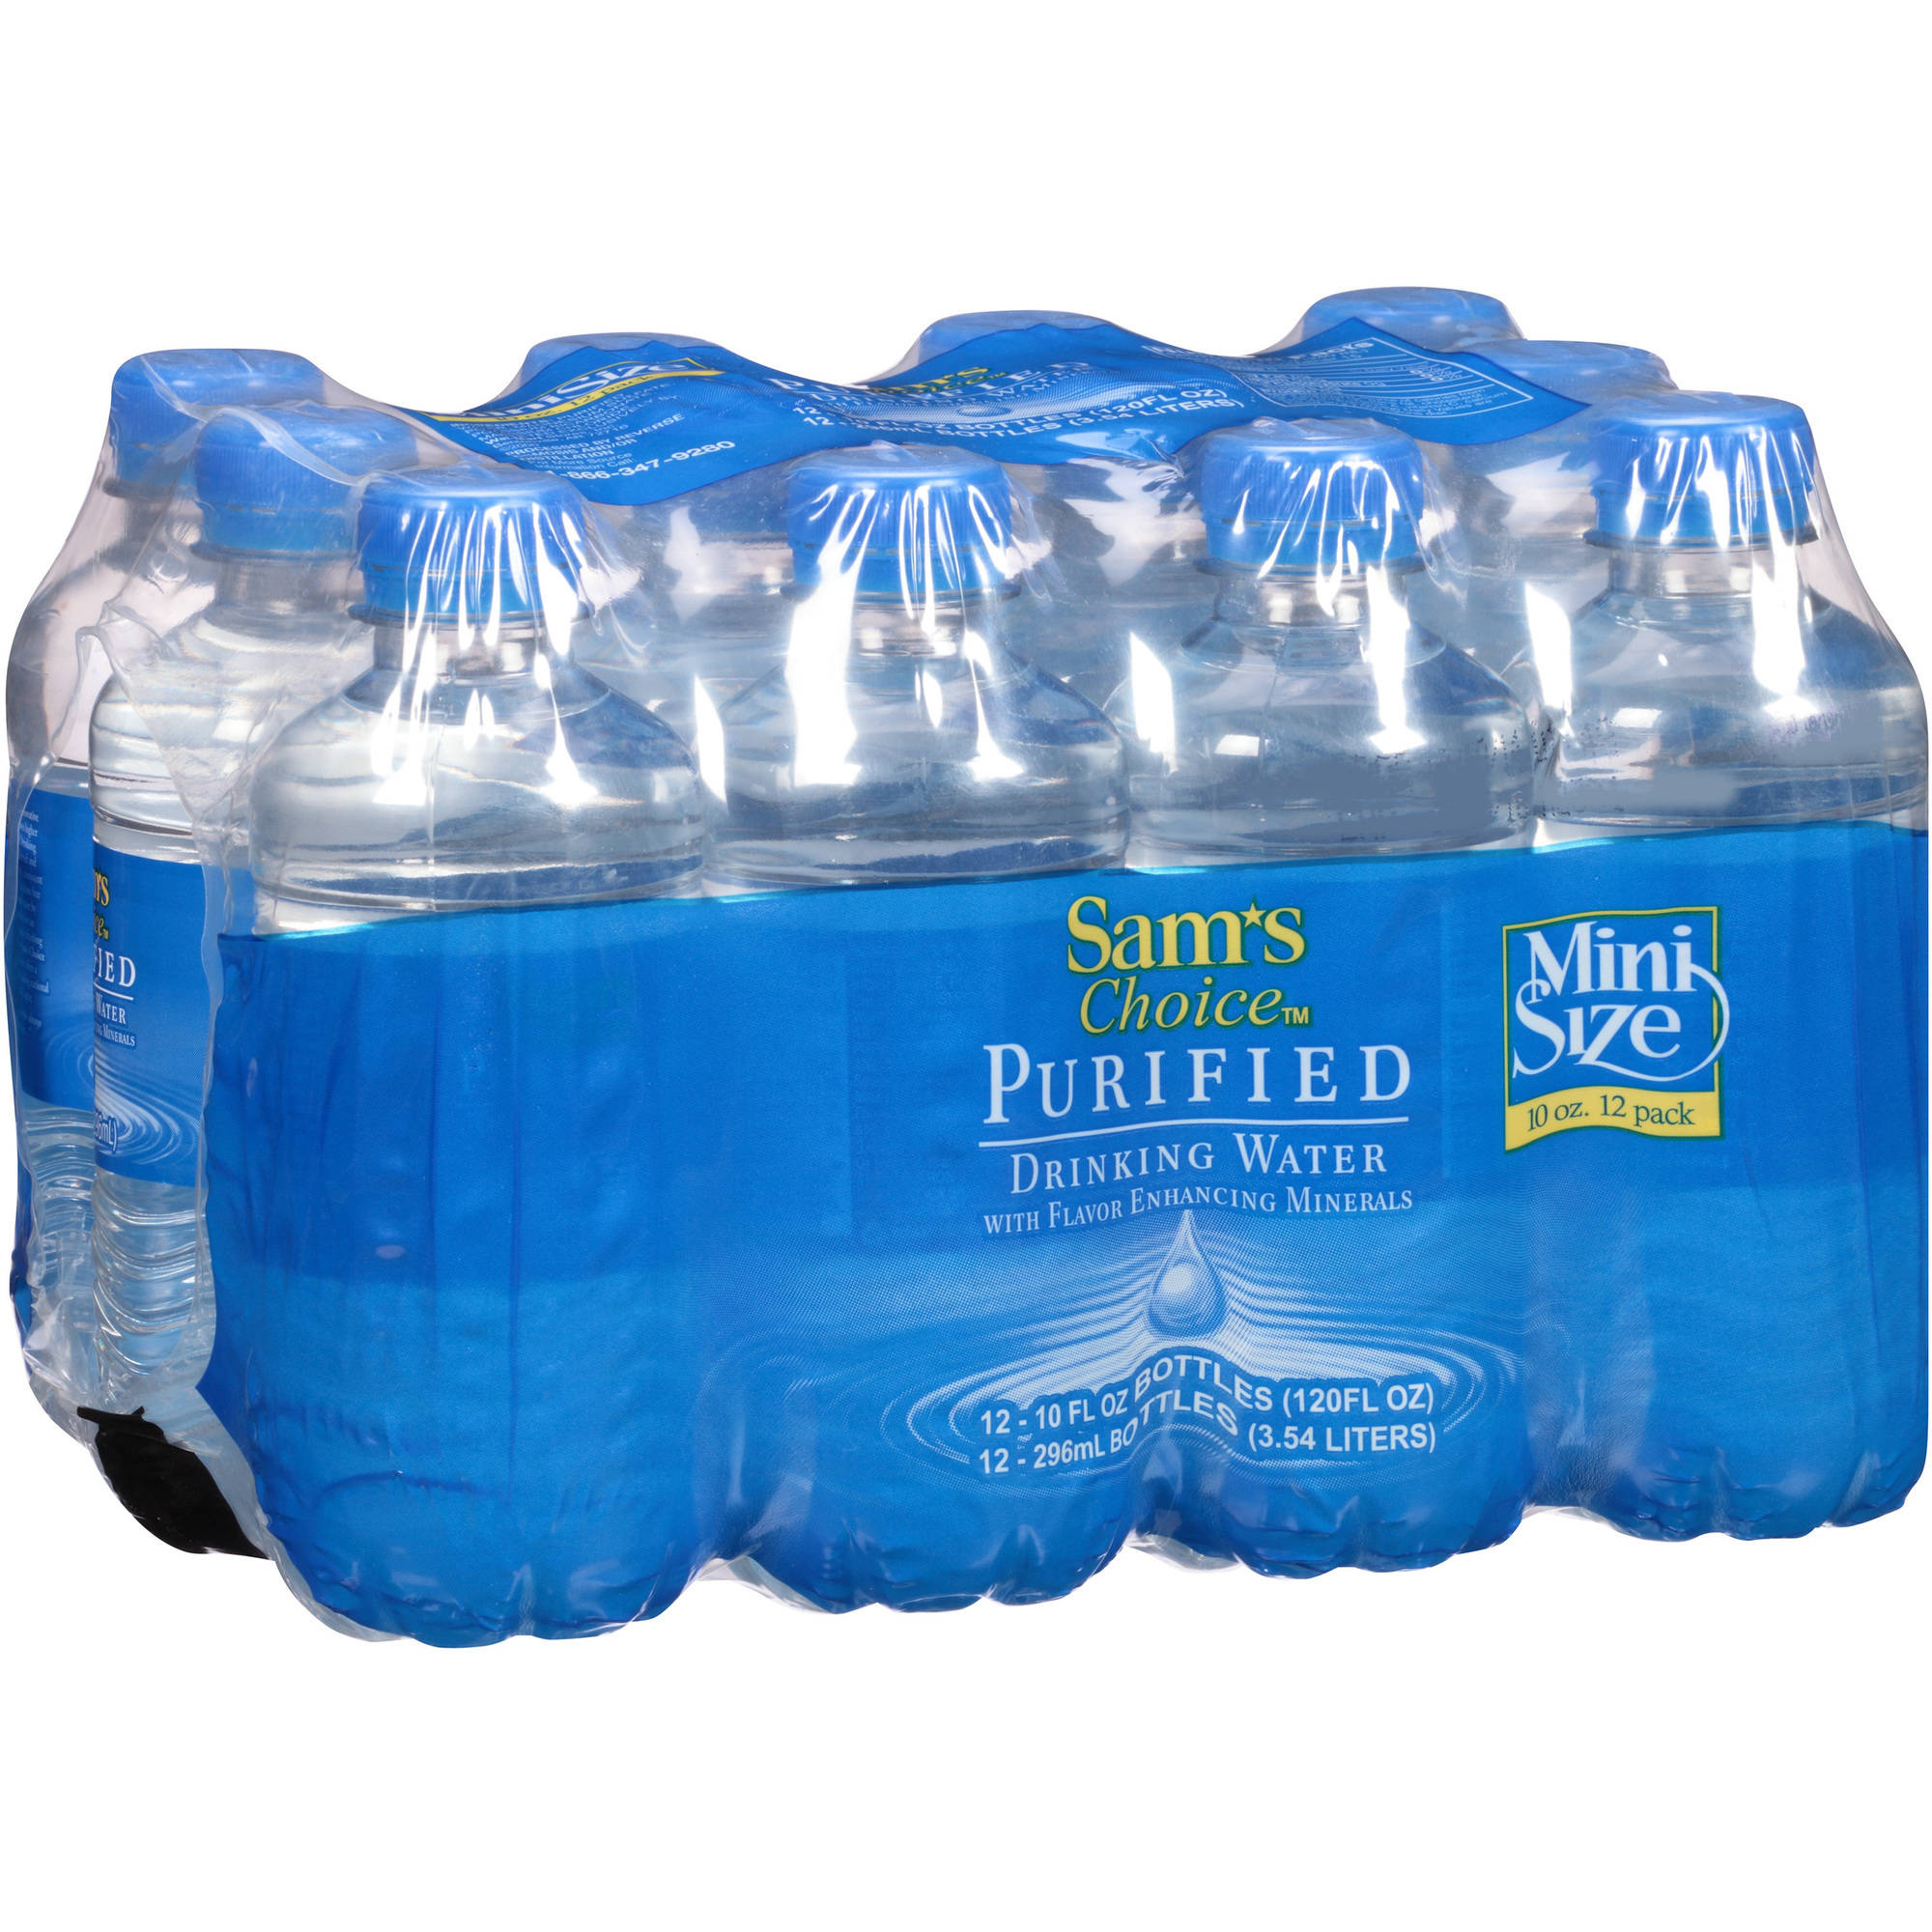 Sam's Choice Purified Drinking Water, 10 fl oz, 12 pack